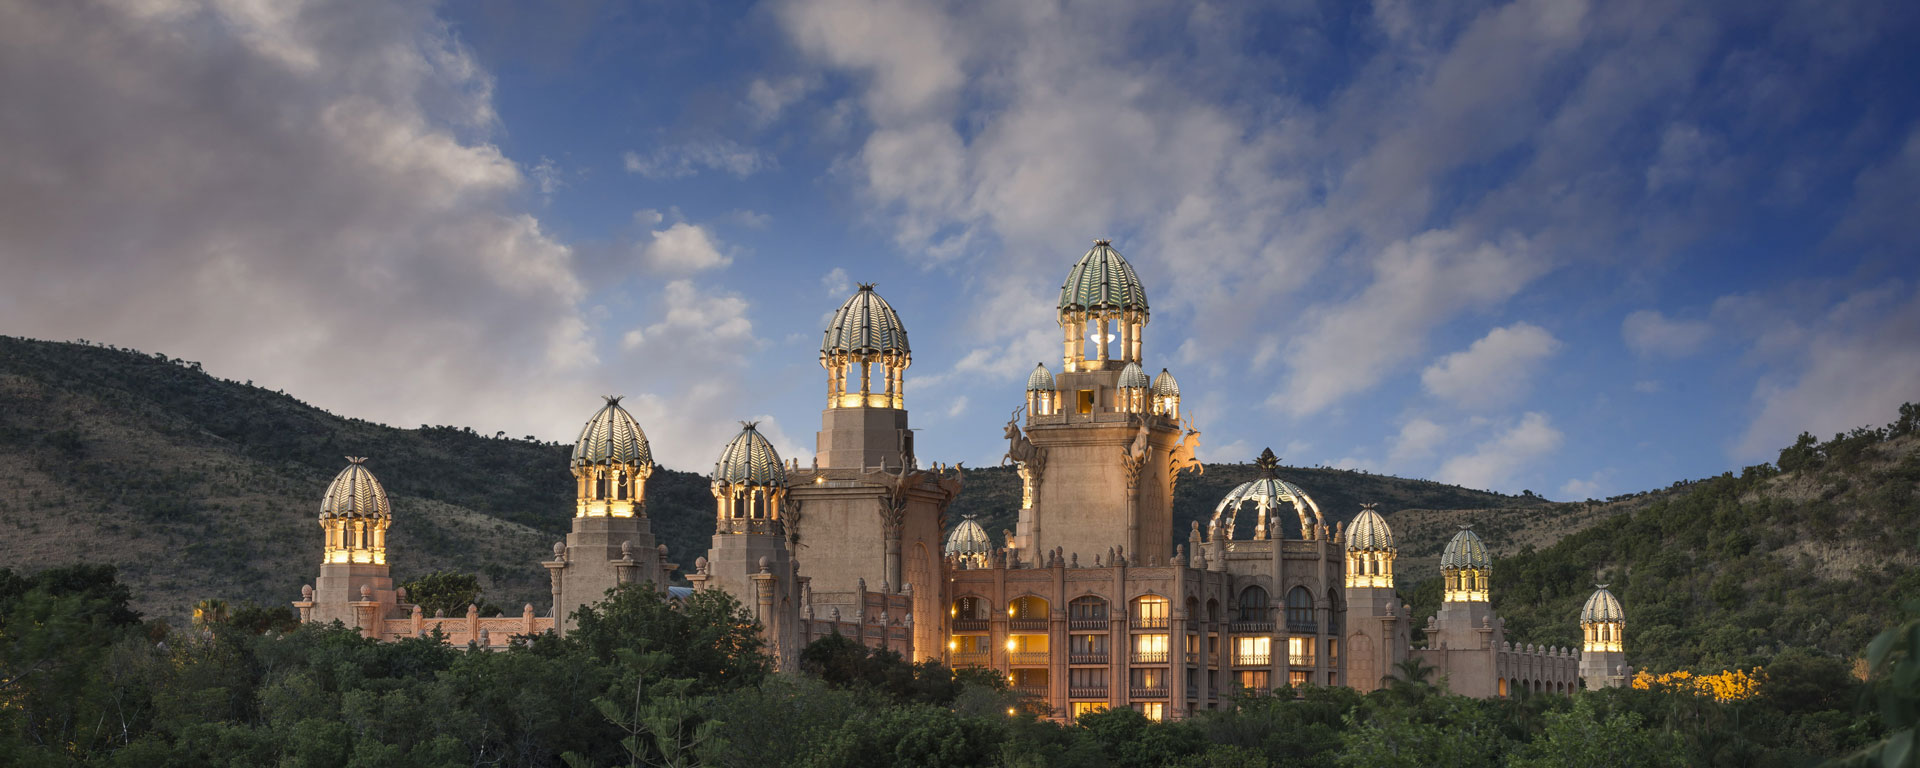 The Palace Of The Lost City >> The Palace Of The Lost City South Africa Go2africa Com